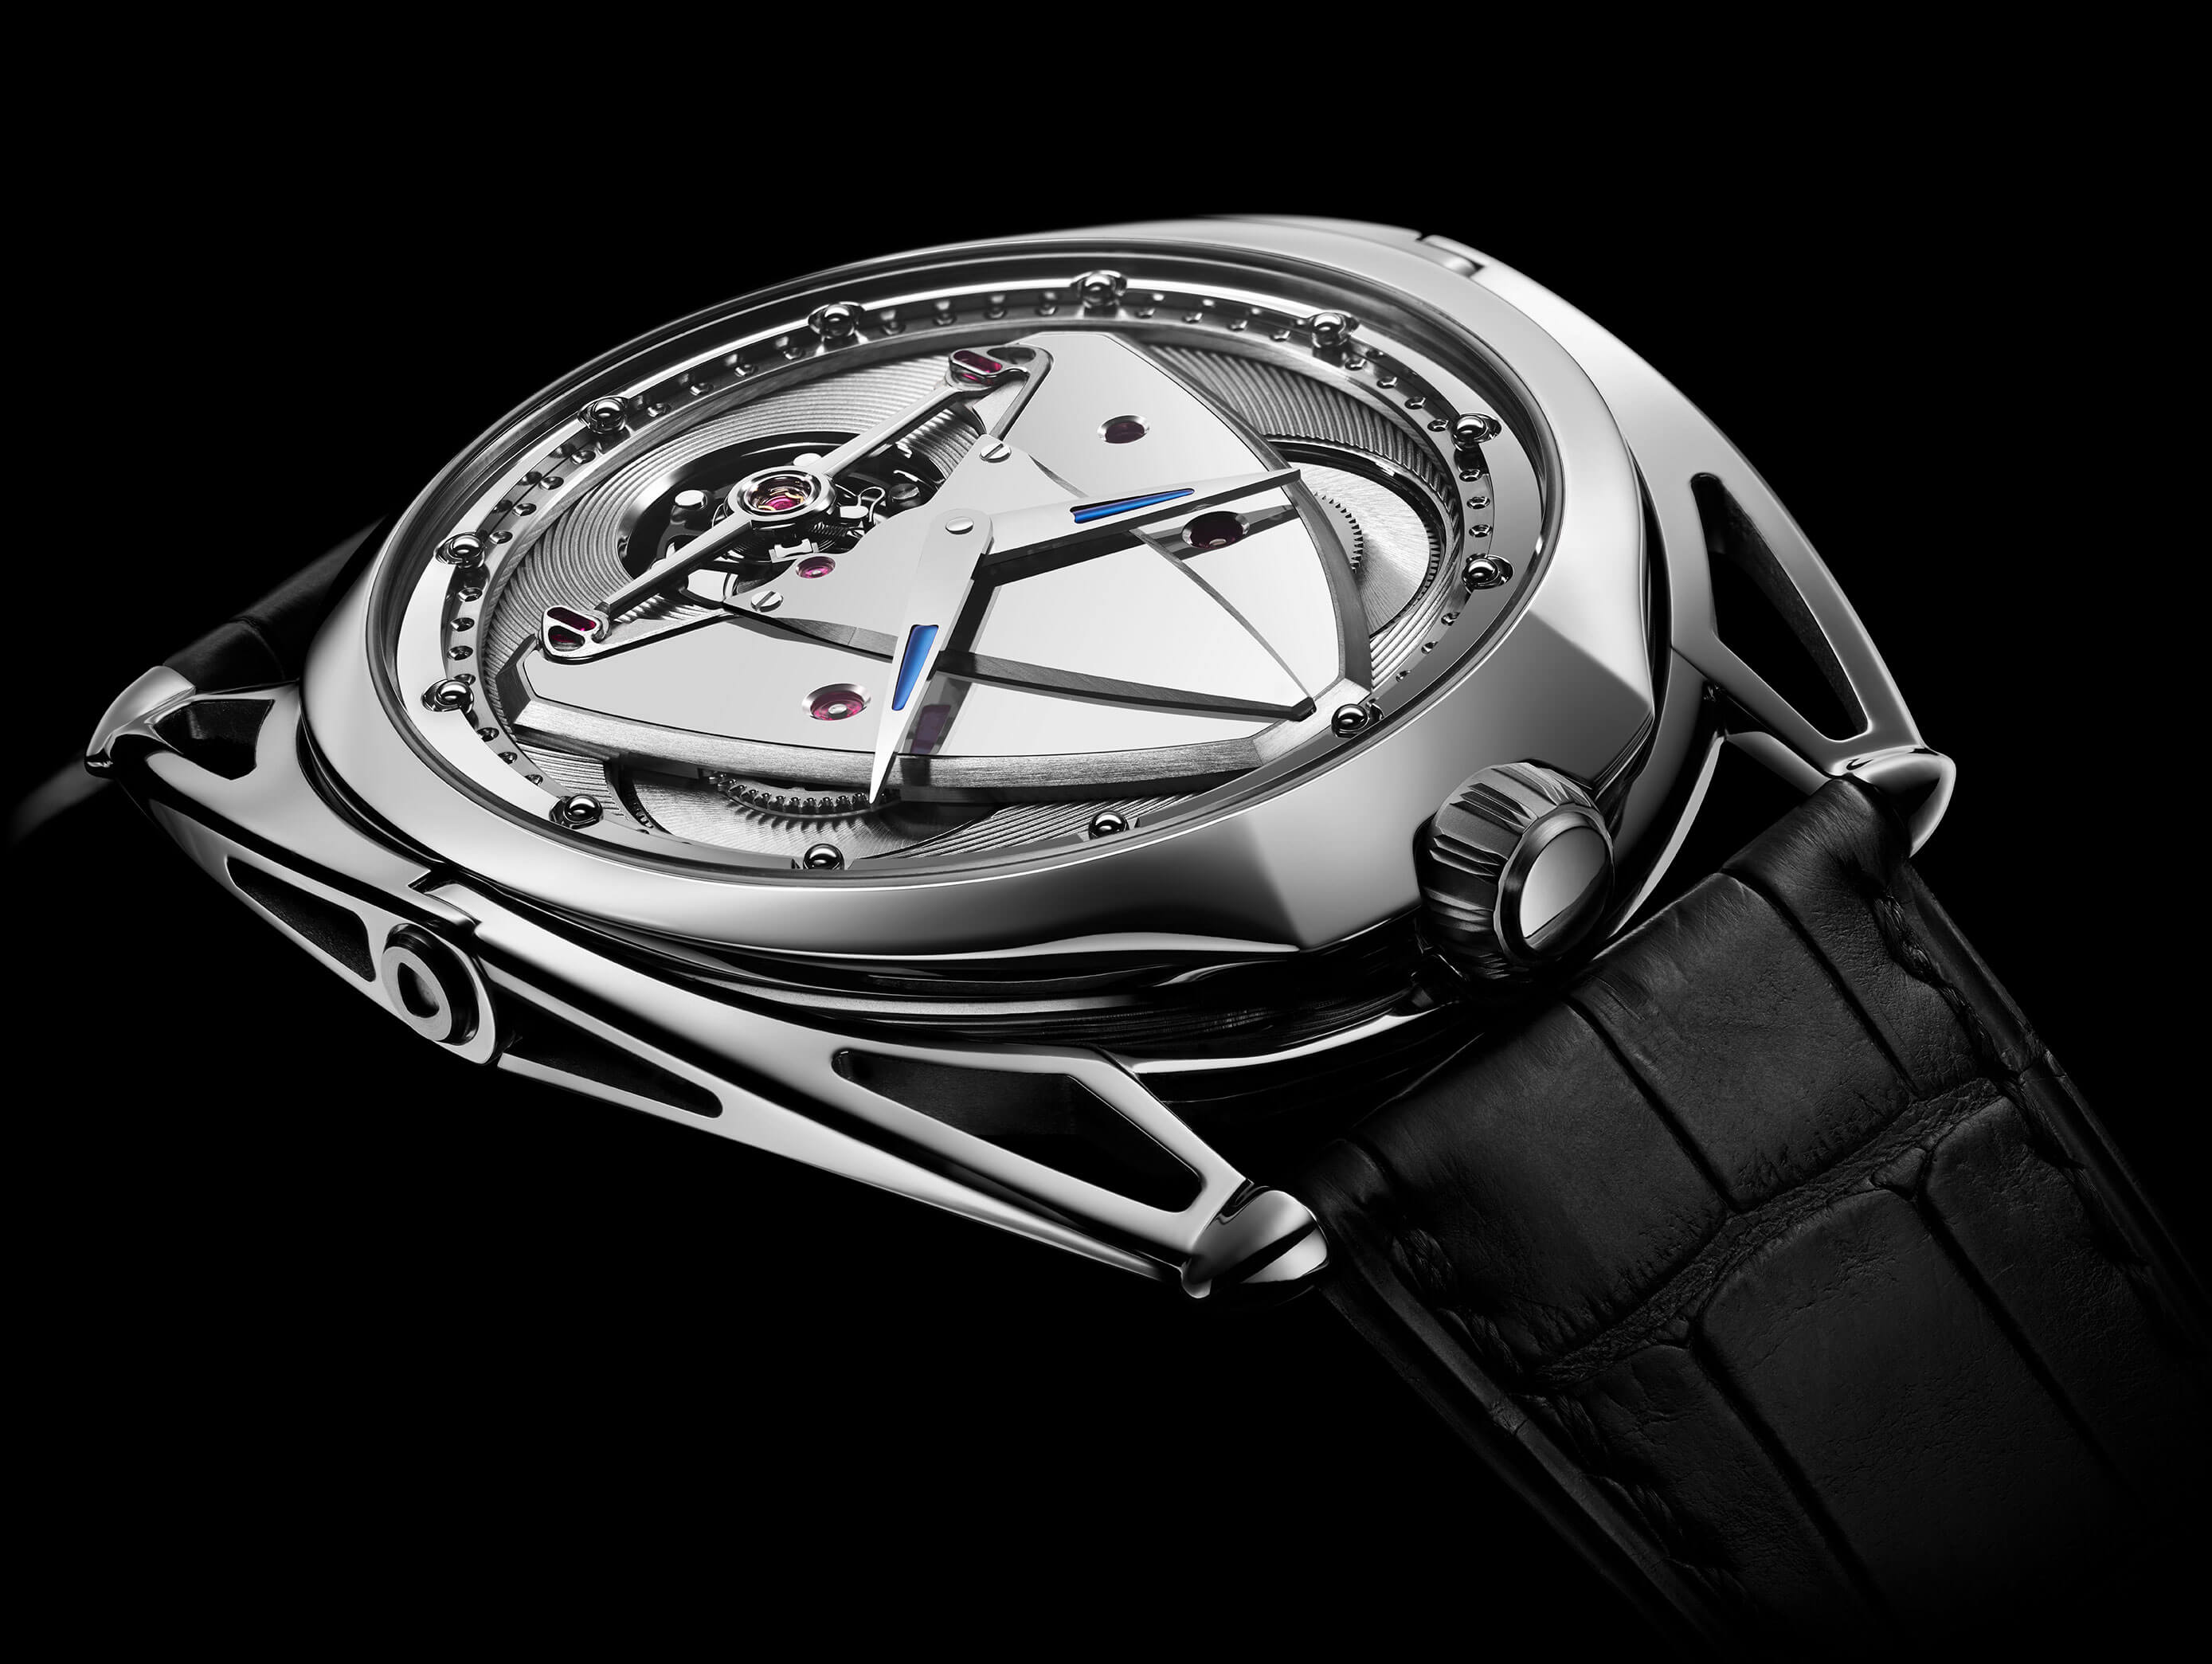 DB28XP, De Bethune Celebrates the 10th Anniversary of the DB28